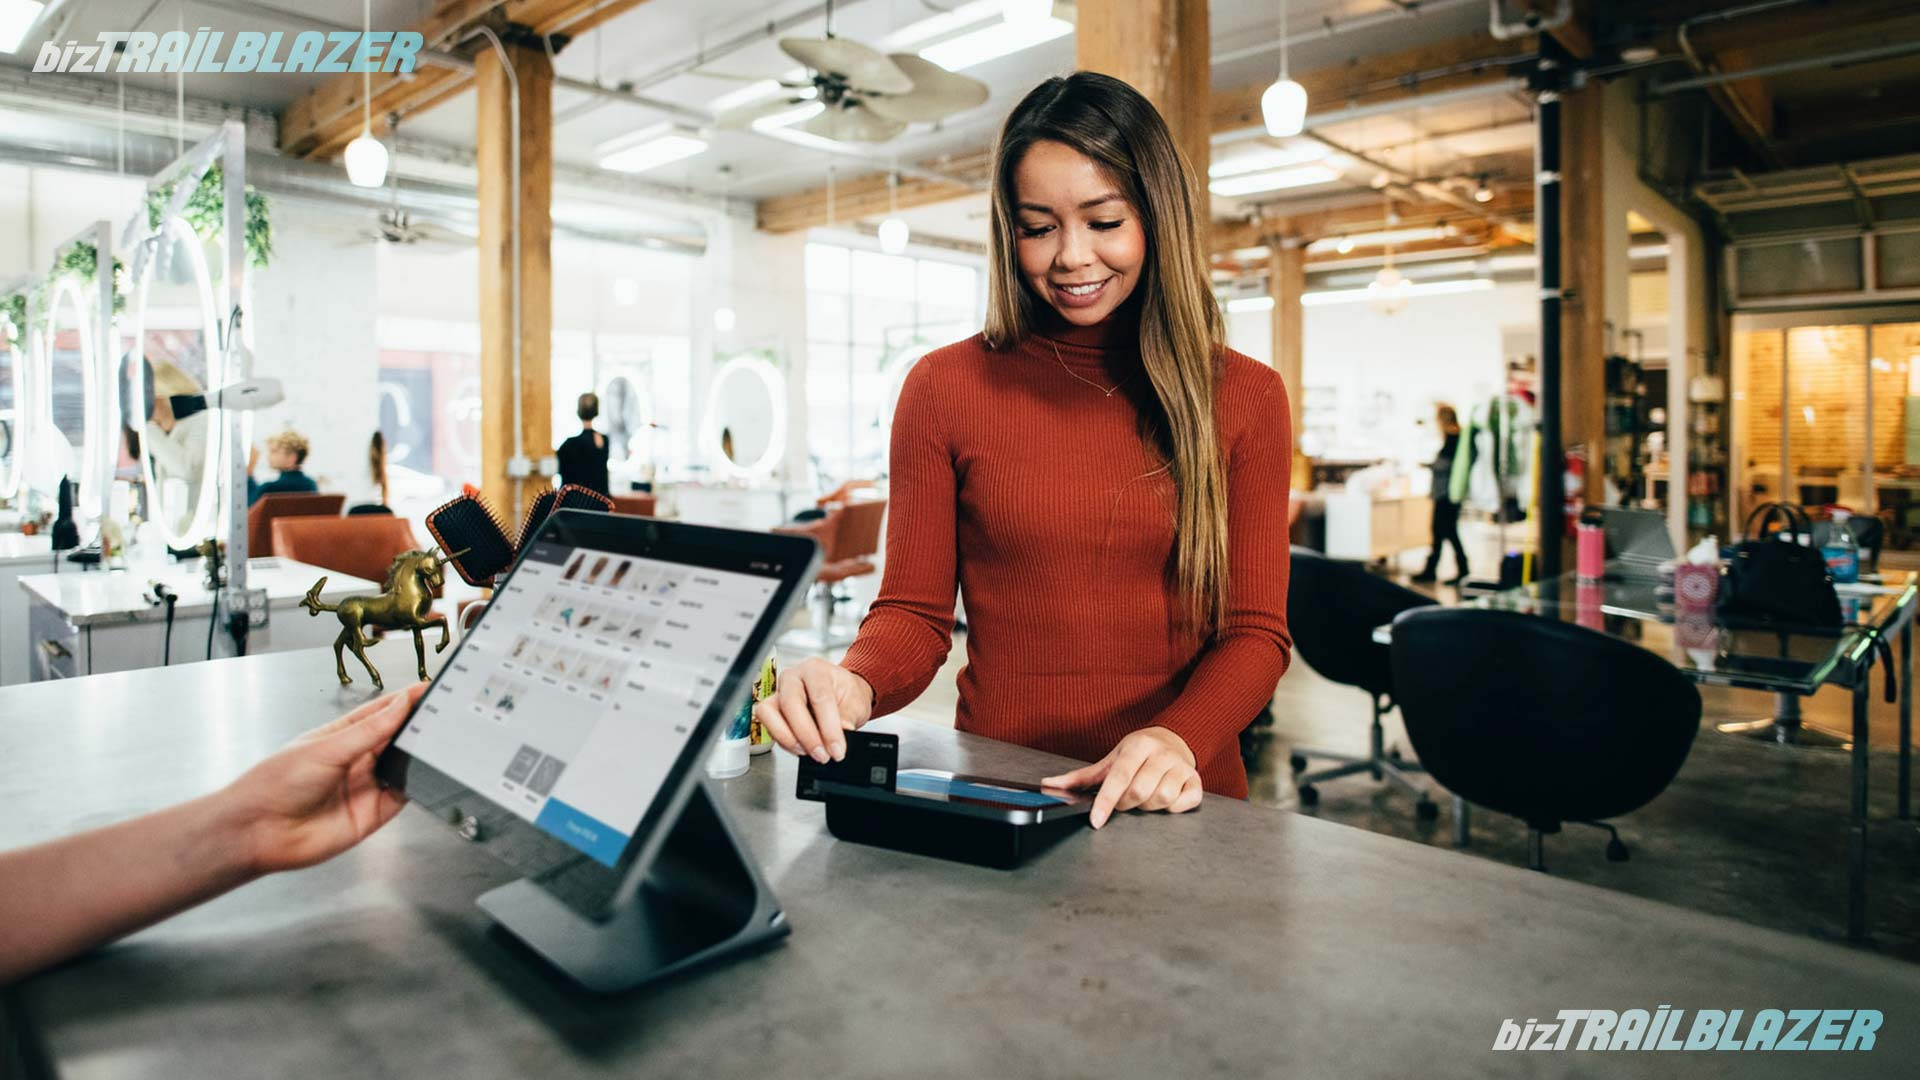 BizTrailBlazer-Blog-Top-10-POS-Systems-for-Your-Business